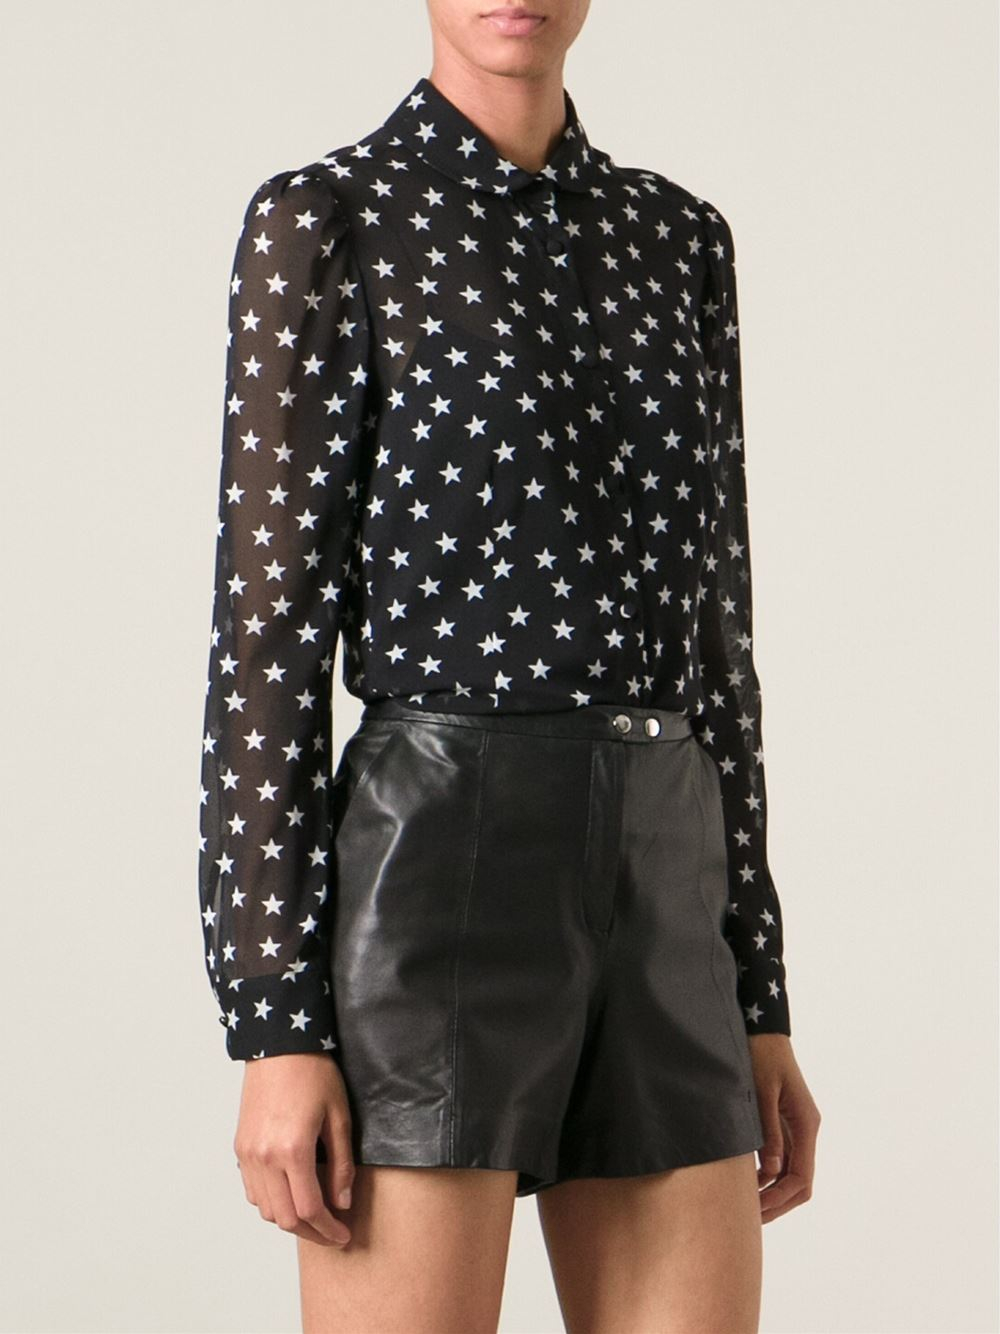 664b0345cbce Lyst - RED Valentino Star Print Blouse in Black